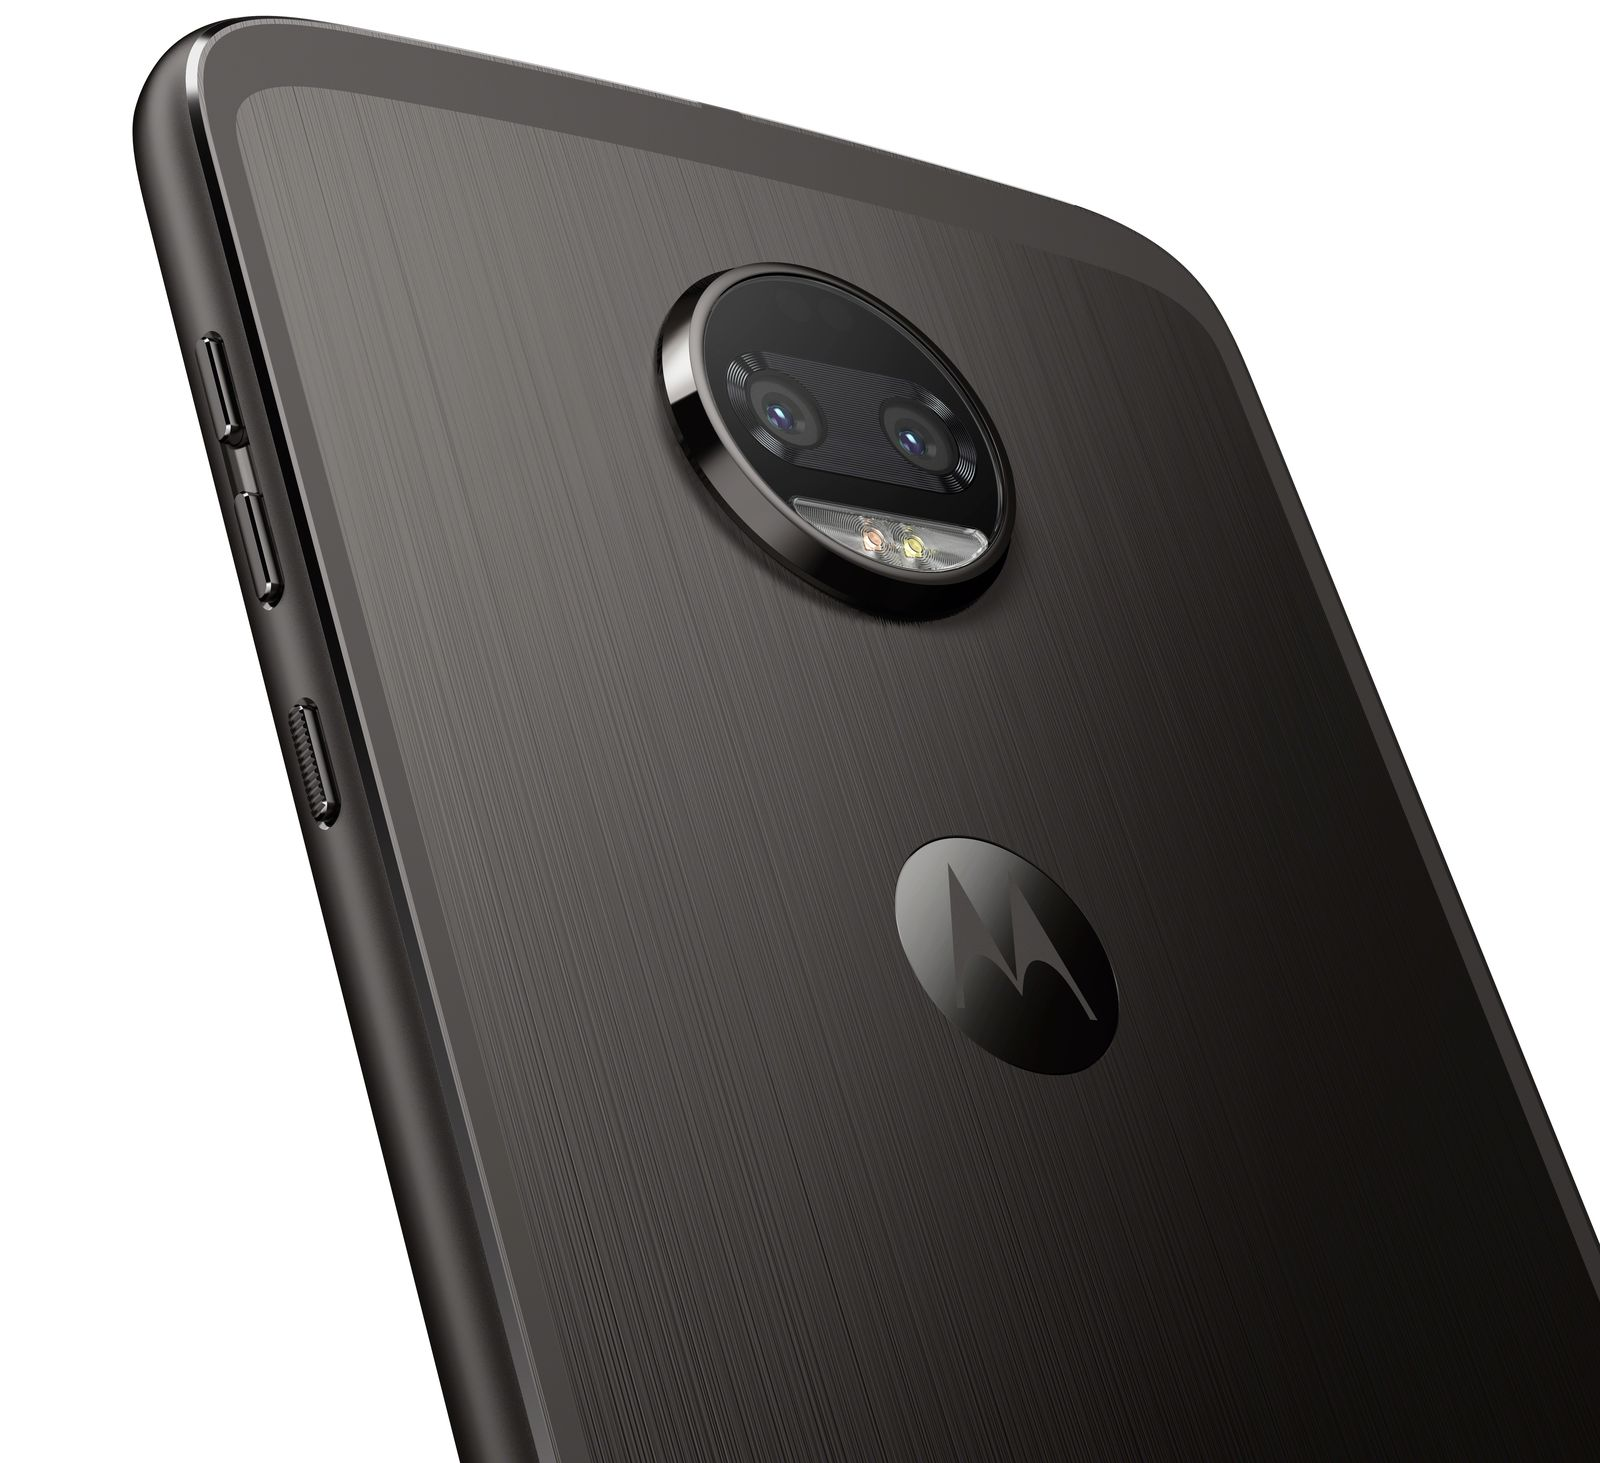 Motorola Moto Z2 Specs Include Gamepad And 360 Camera Mods